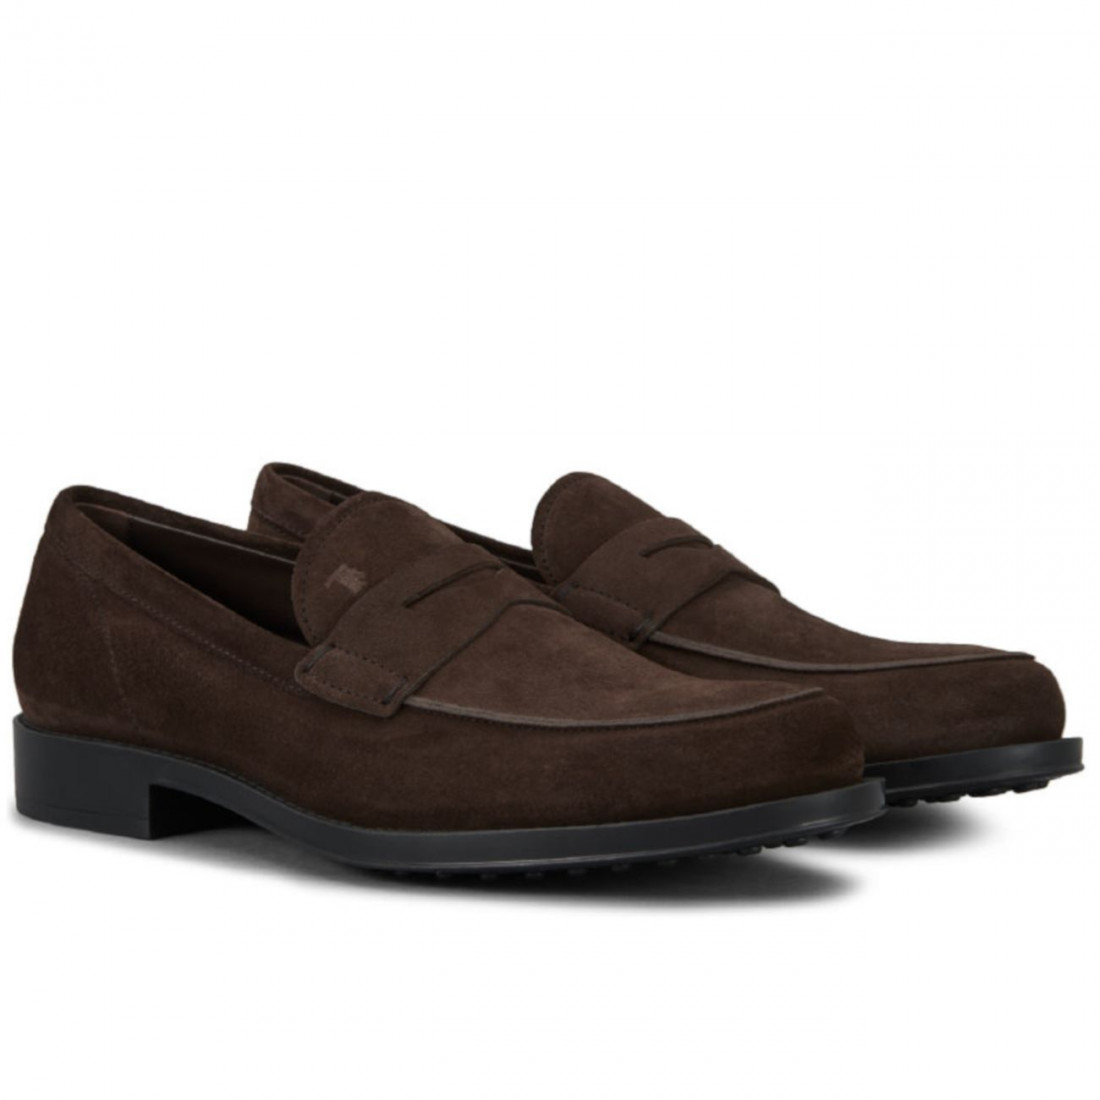 loafers man tods xxm0ud006400p0s807 1820